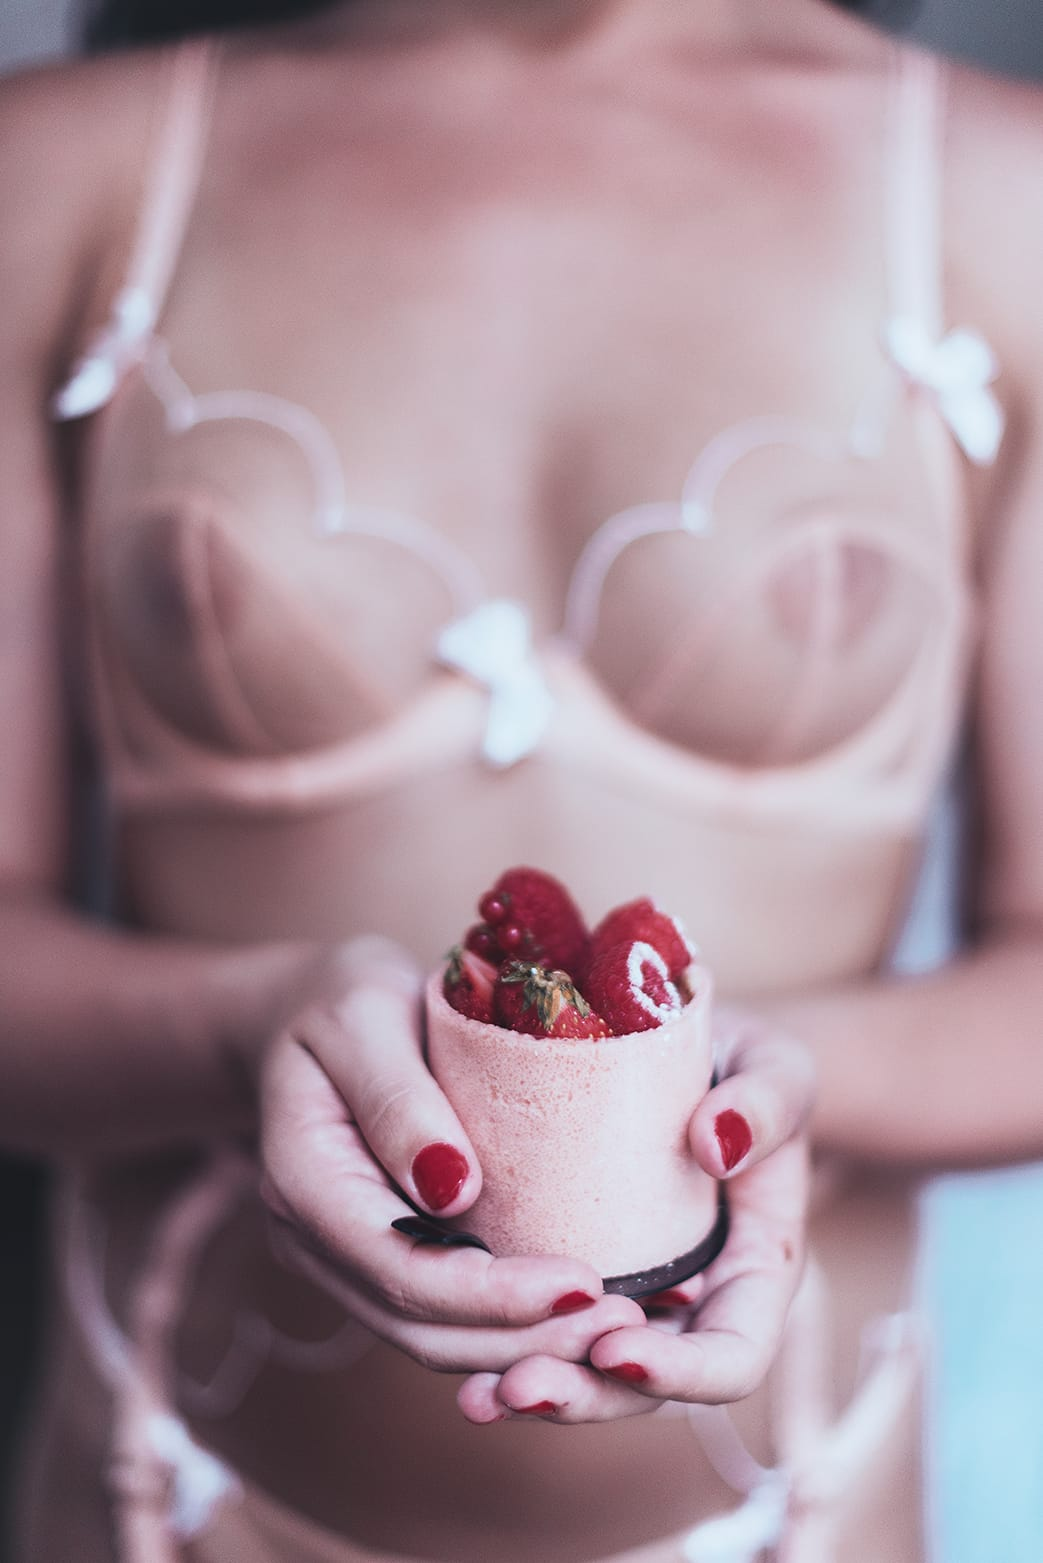 Woman holding a french dessert during her portrait and boudoir photoshoot in Paris by photographer gloria villa